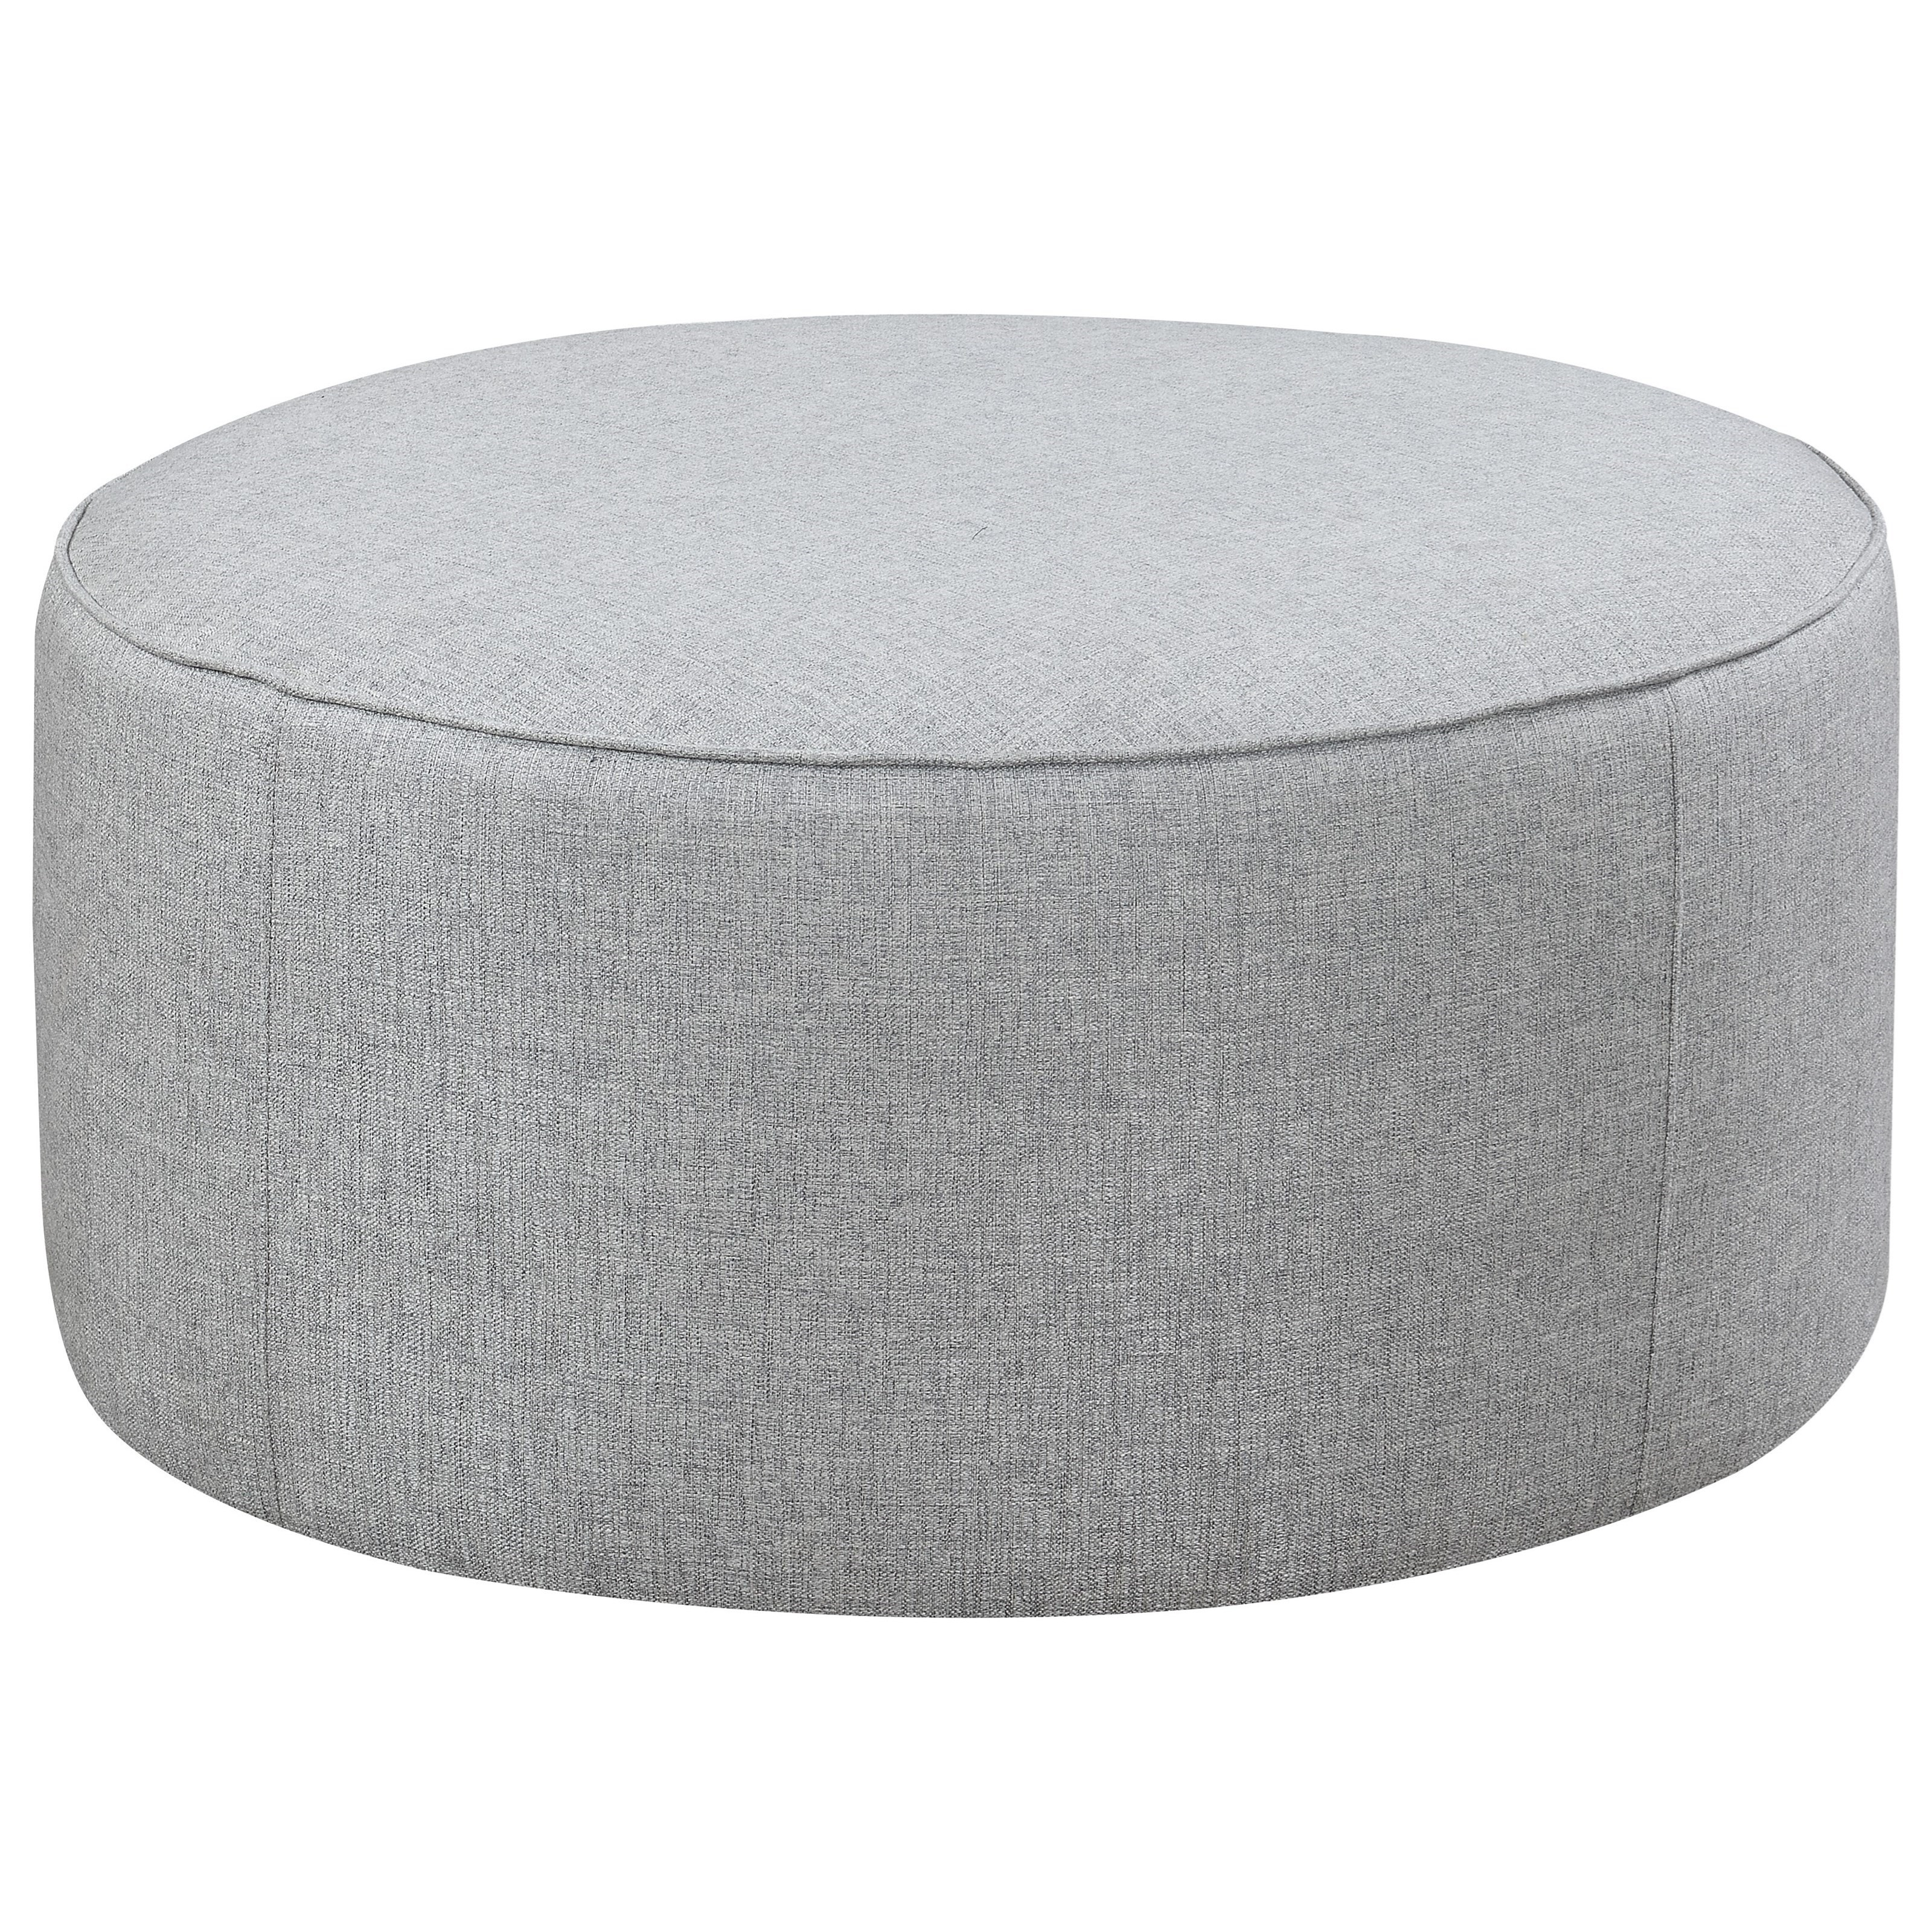 Jaizel Cocktail Ottoman by Emerald at Northeast Factory Direct